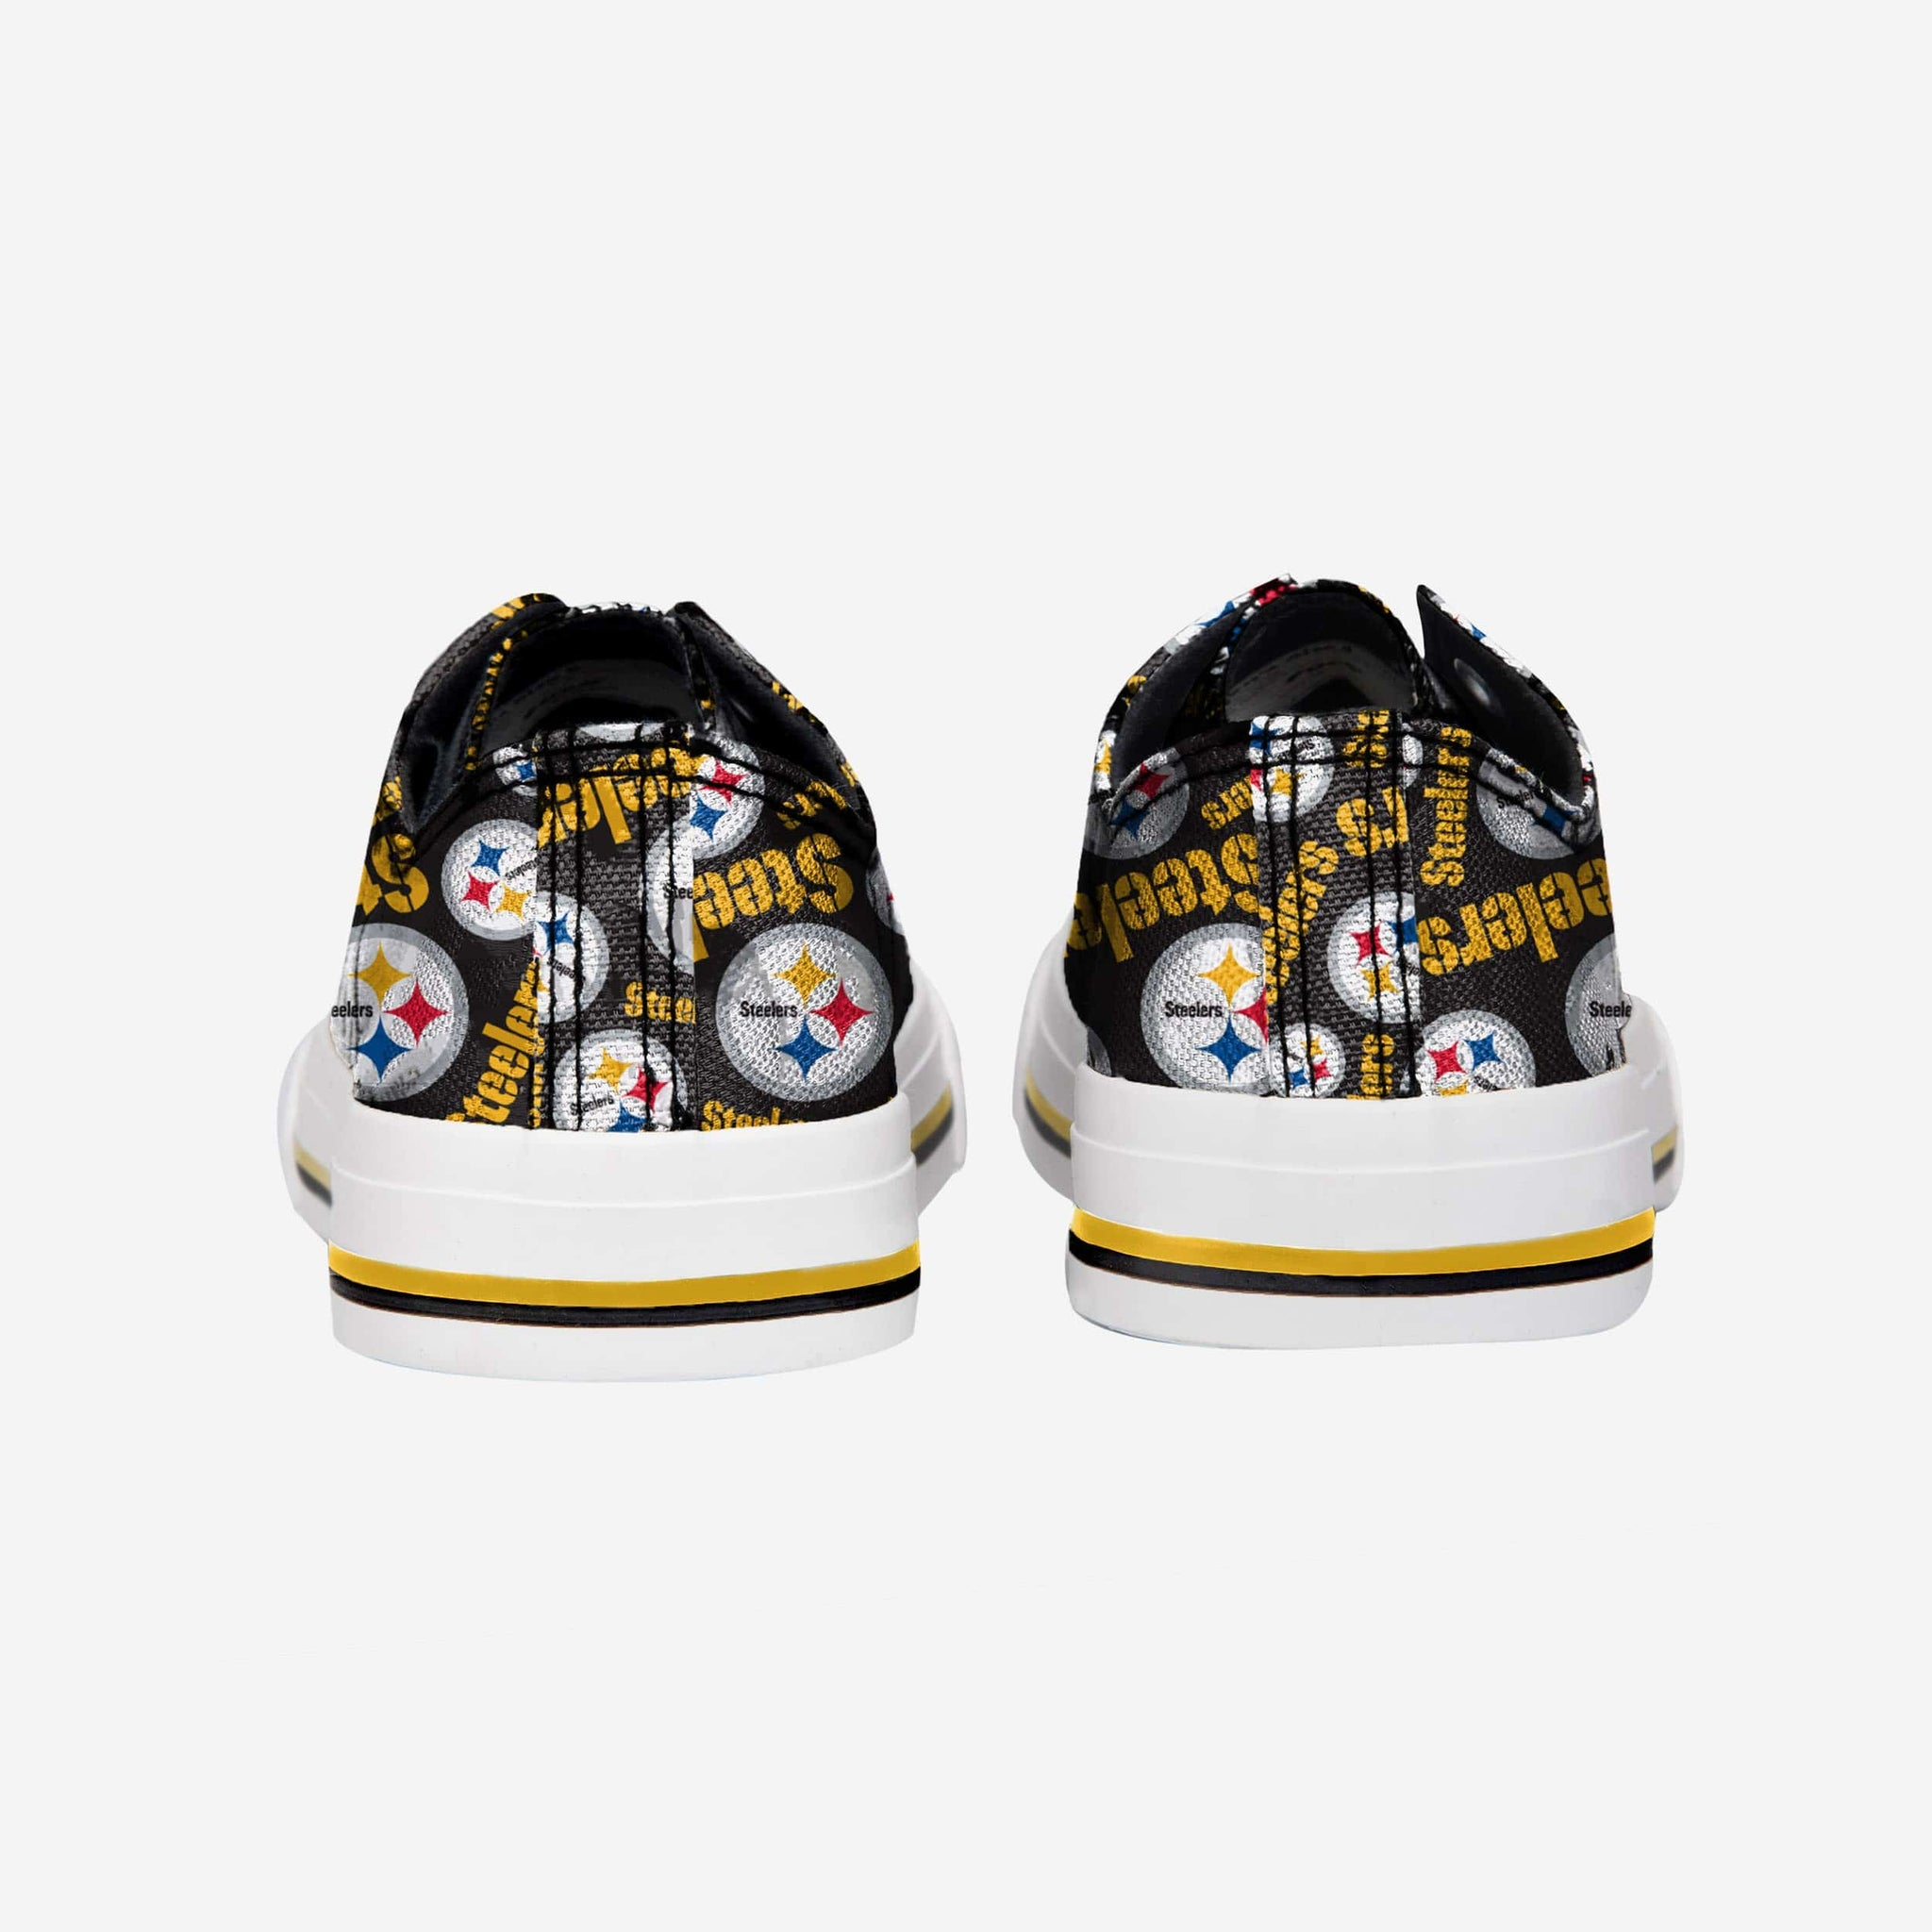 5d8a4ce0 Pittsburgh Steelers Womens Low Top Repeat Print Canvas Shoe FOCO - FOCO.com